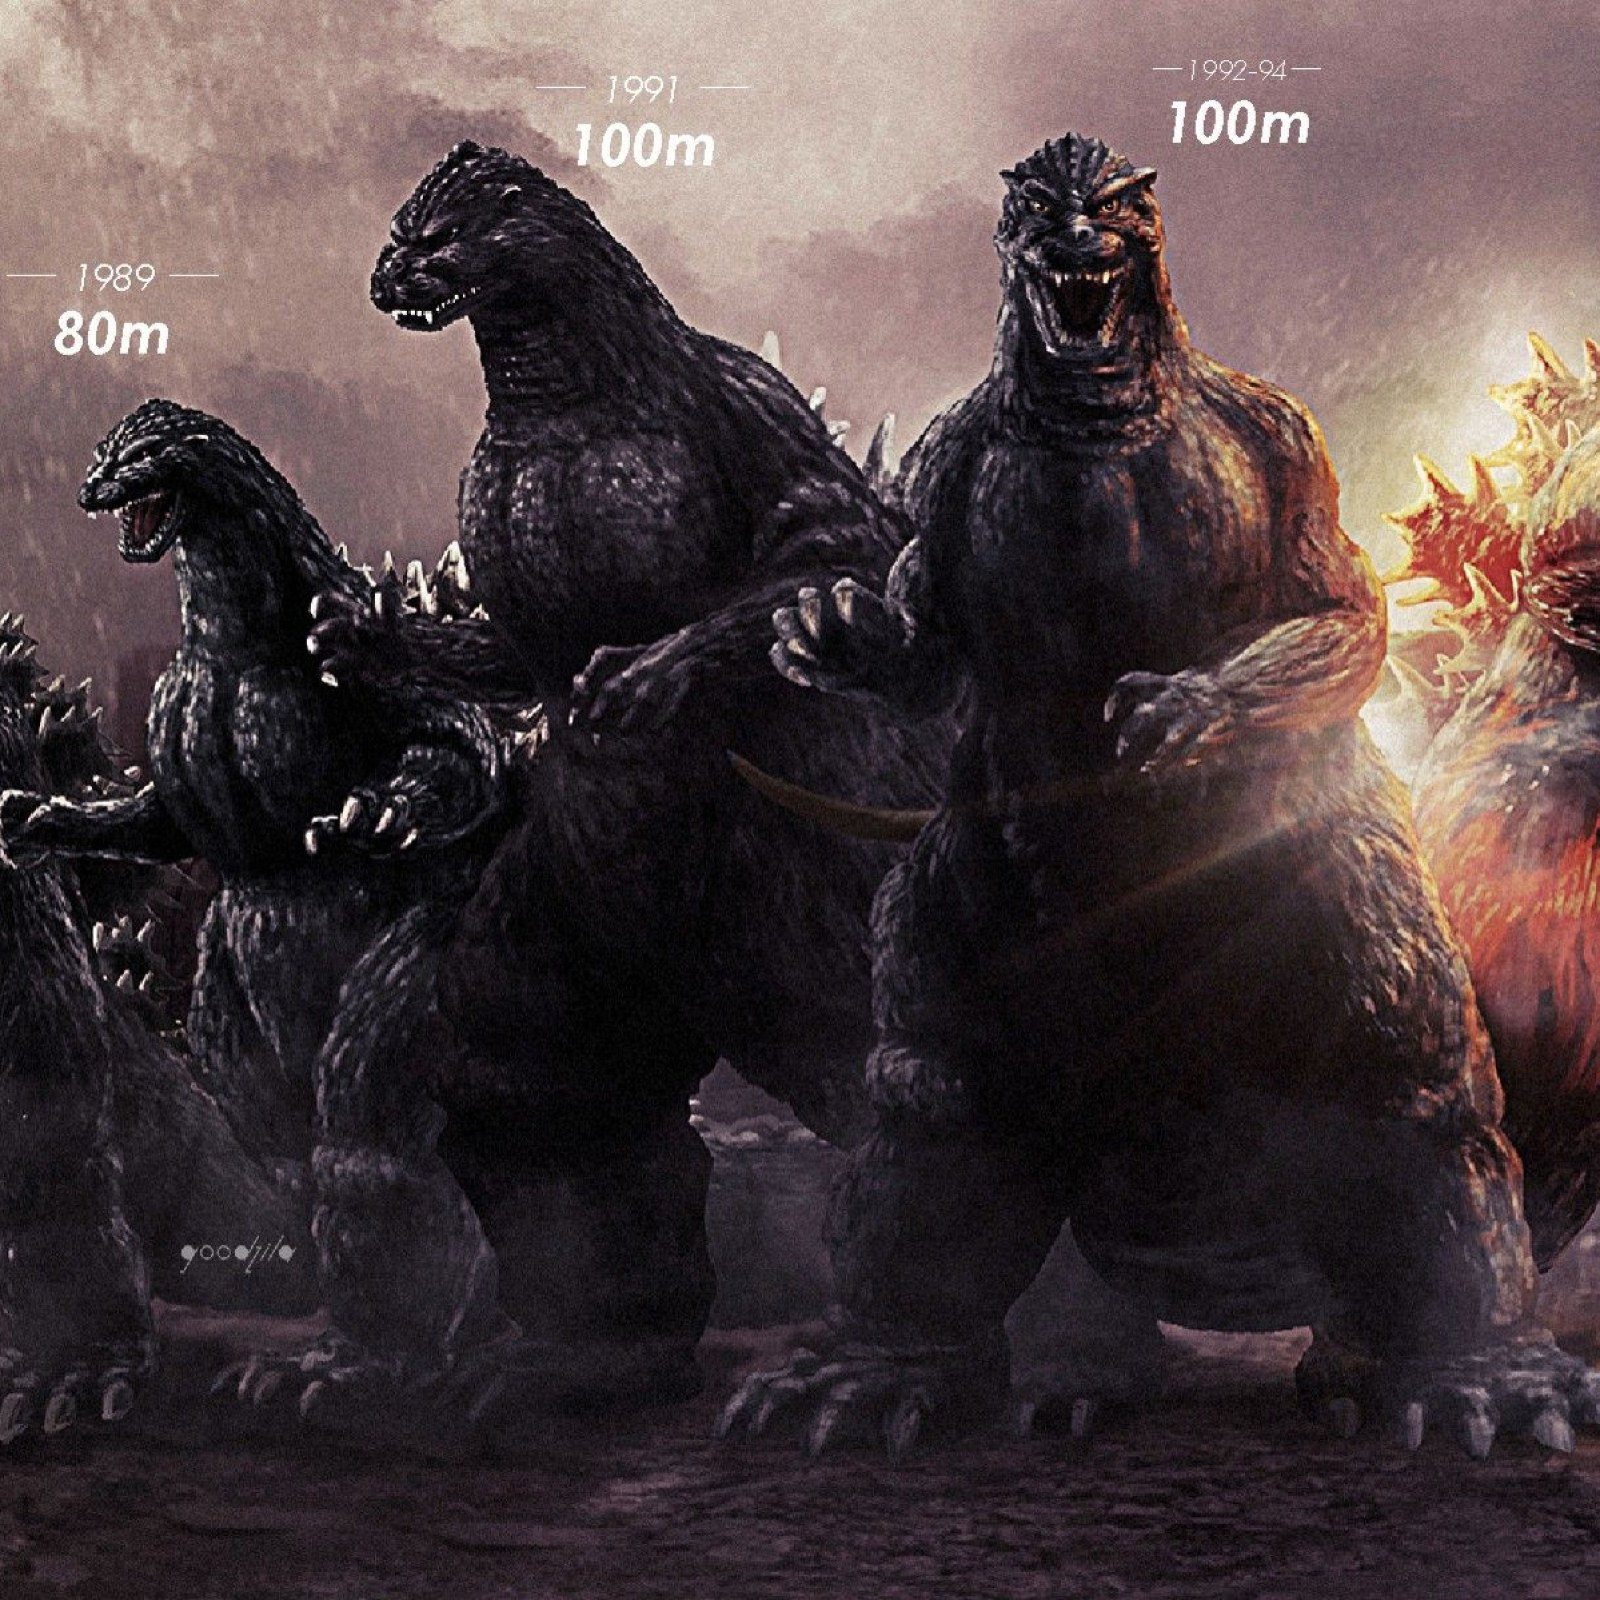 Godzilla' Size Chart Shows How Much the 'King of Monsters